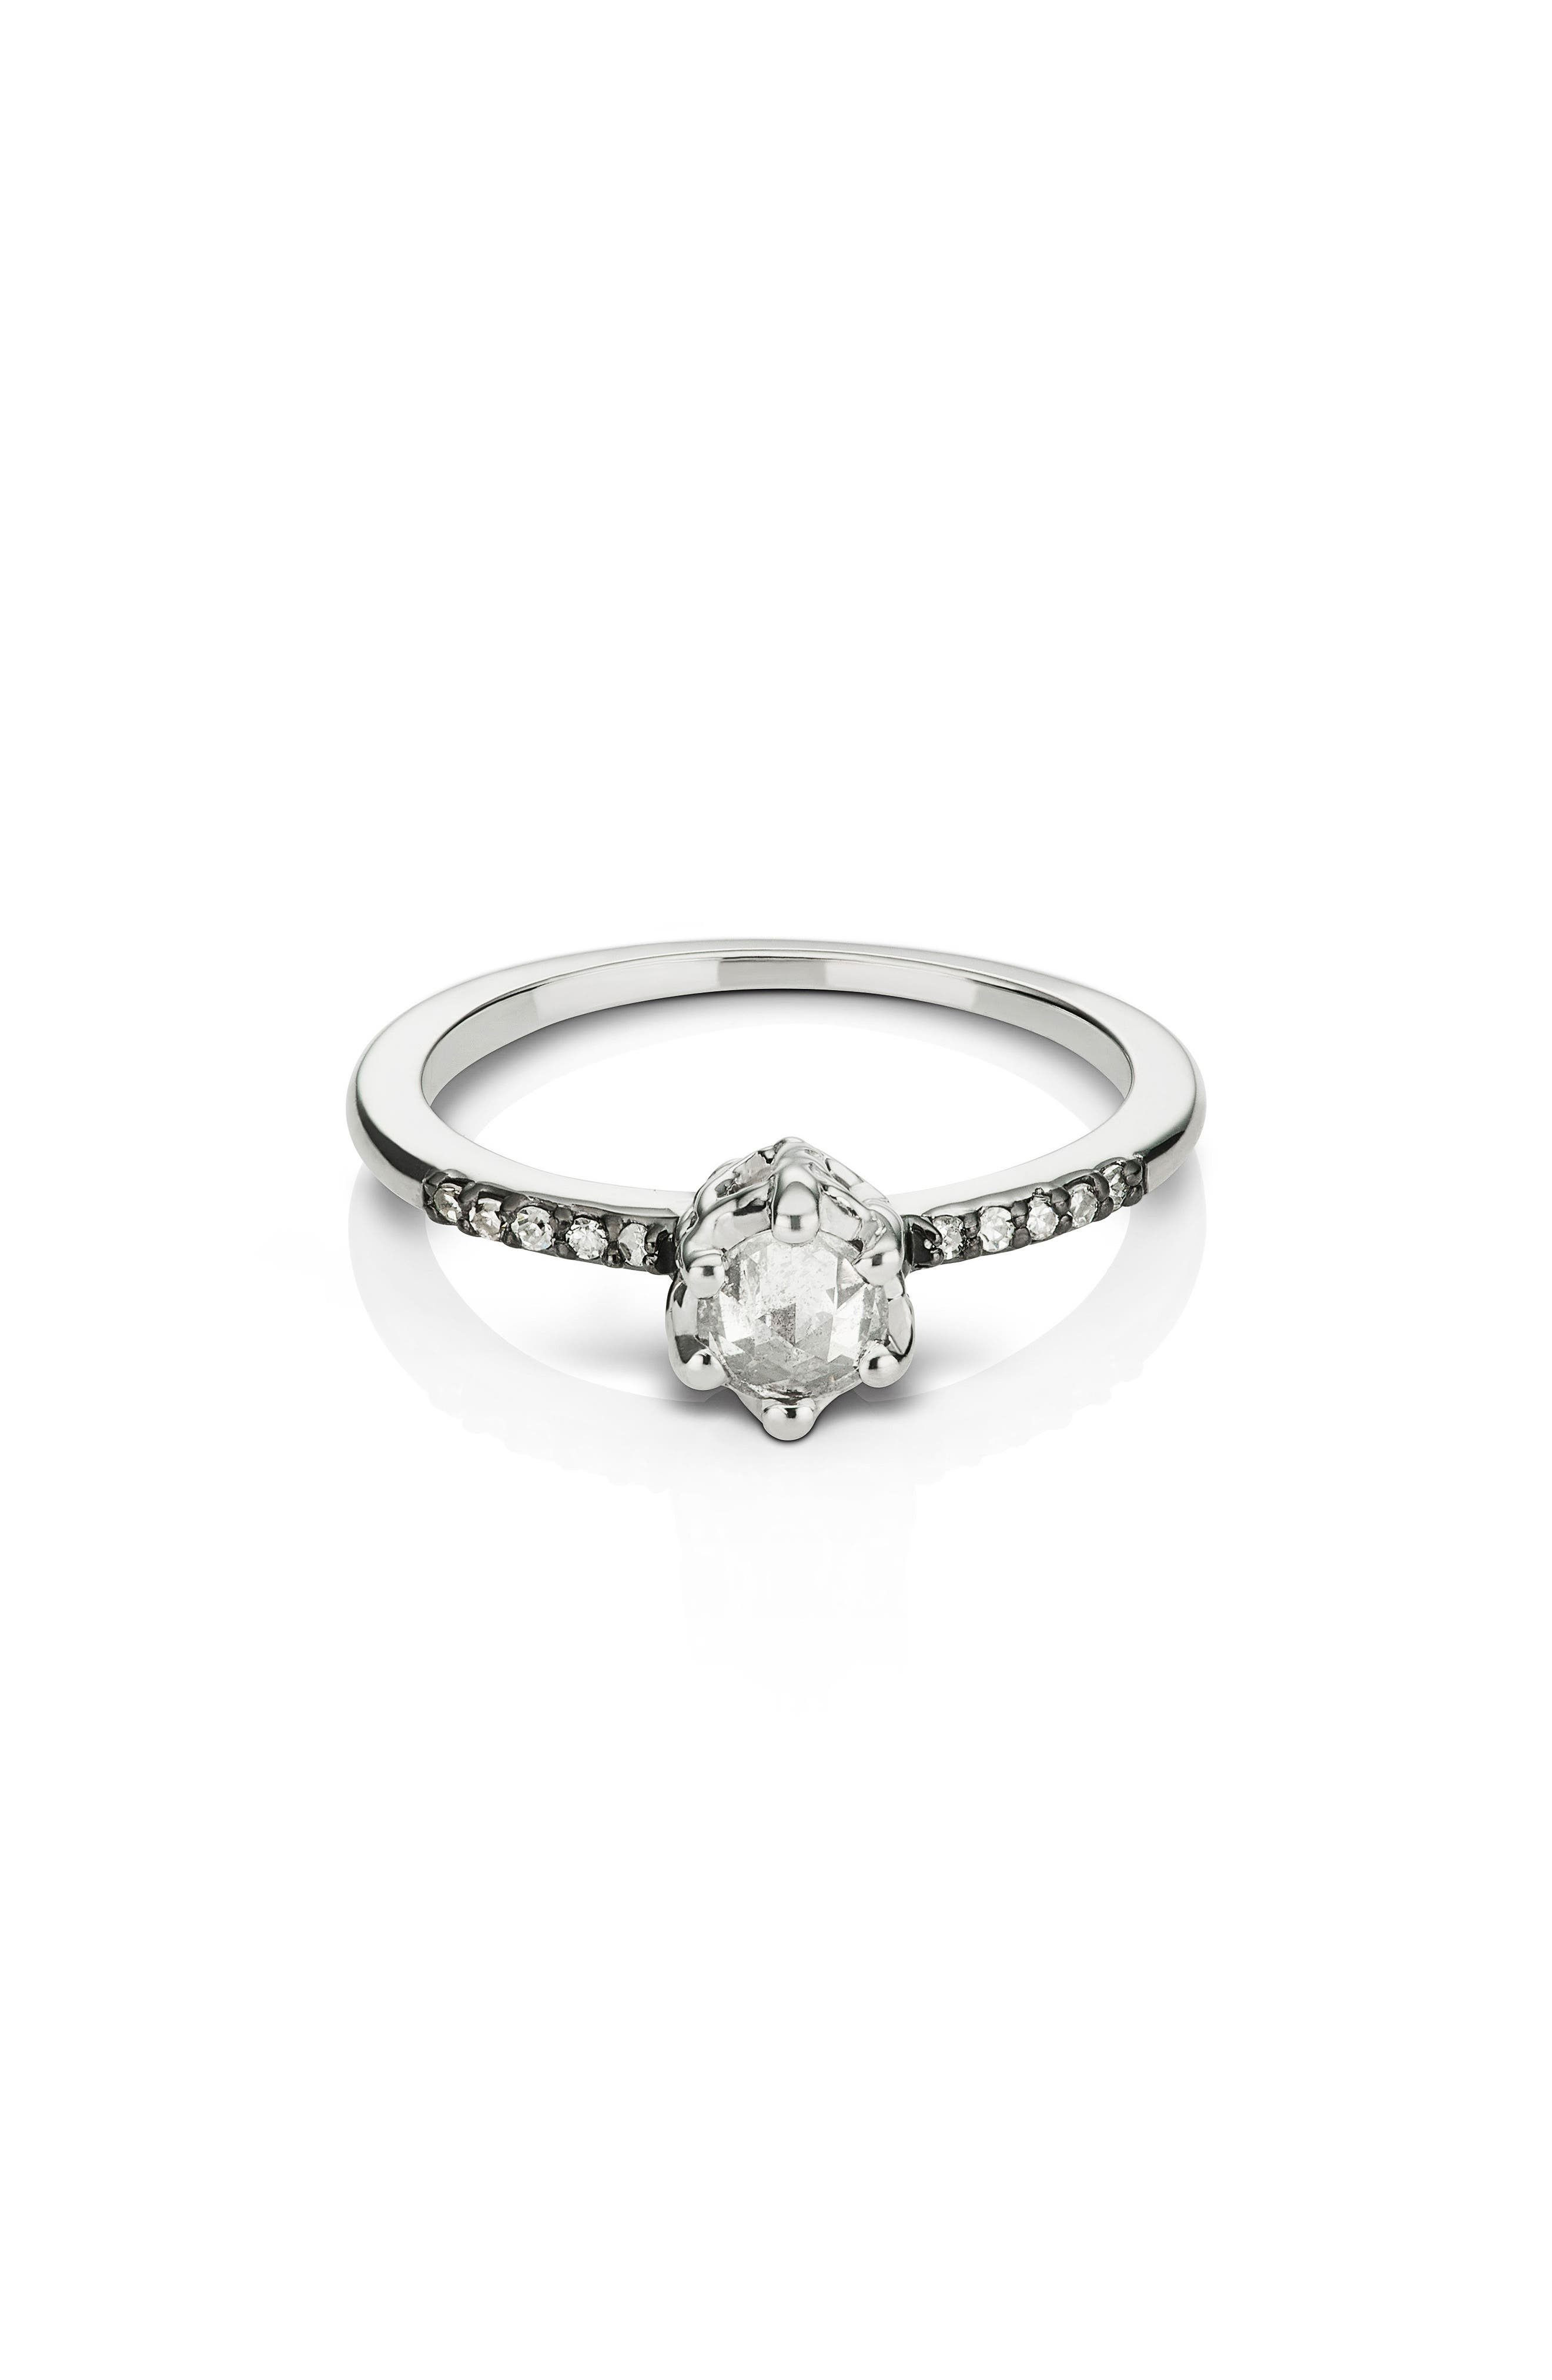 Entity Diamond Solitaire Ring,                             Main thumbnail 1, color,                             White Gold